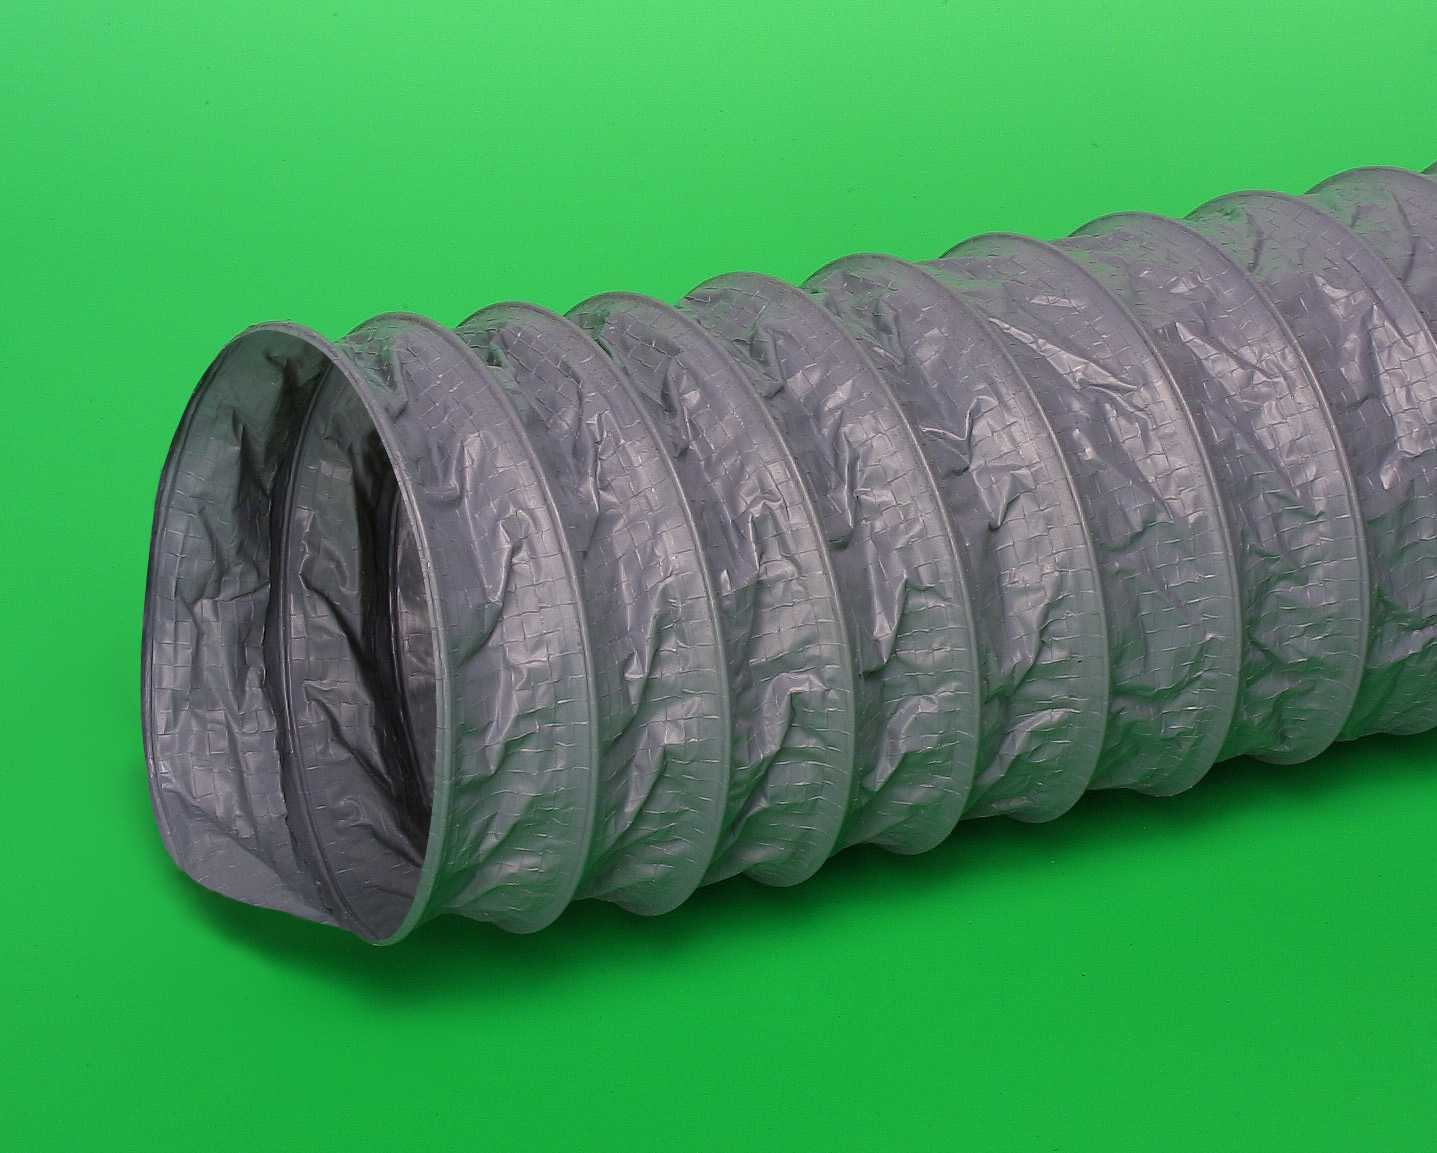 ventilation duct flexible duct insulated flexible duct Airflex  #1CAF40